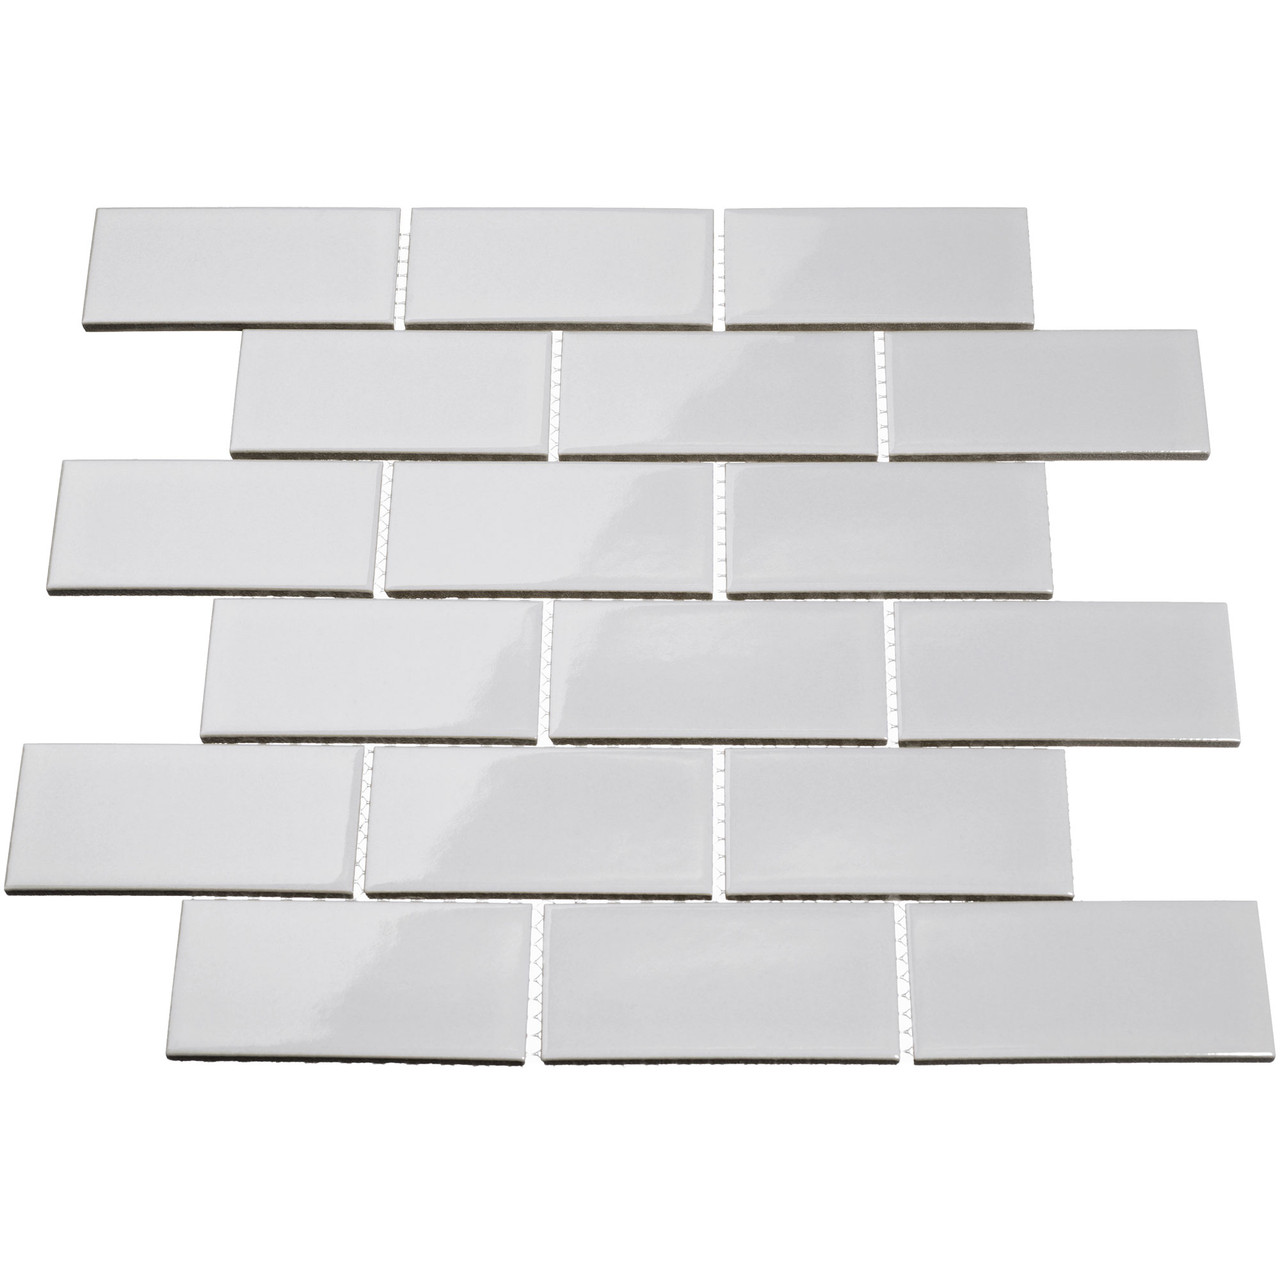 - Giorbello Porcelain Subway Tile, 2 X 4, Light Gray